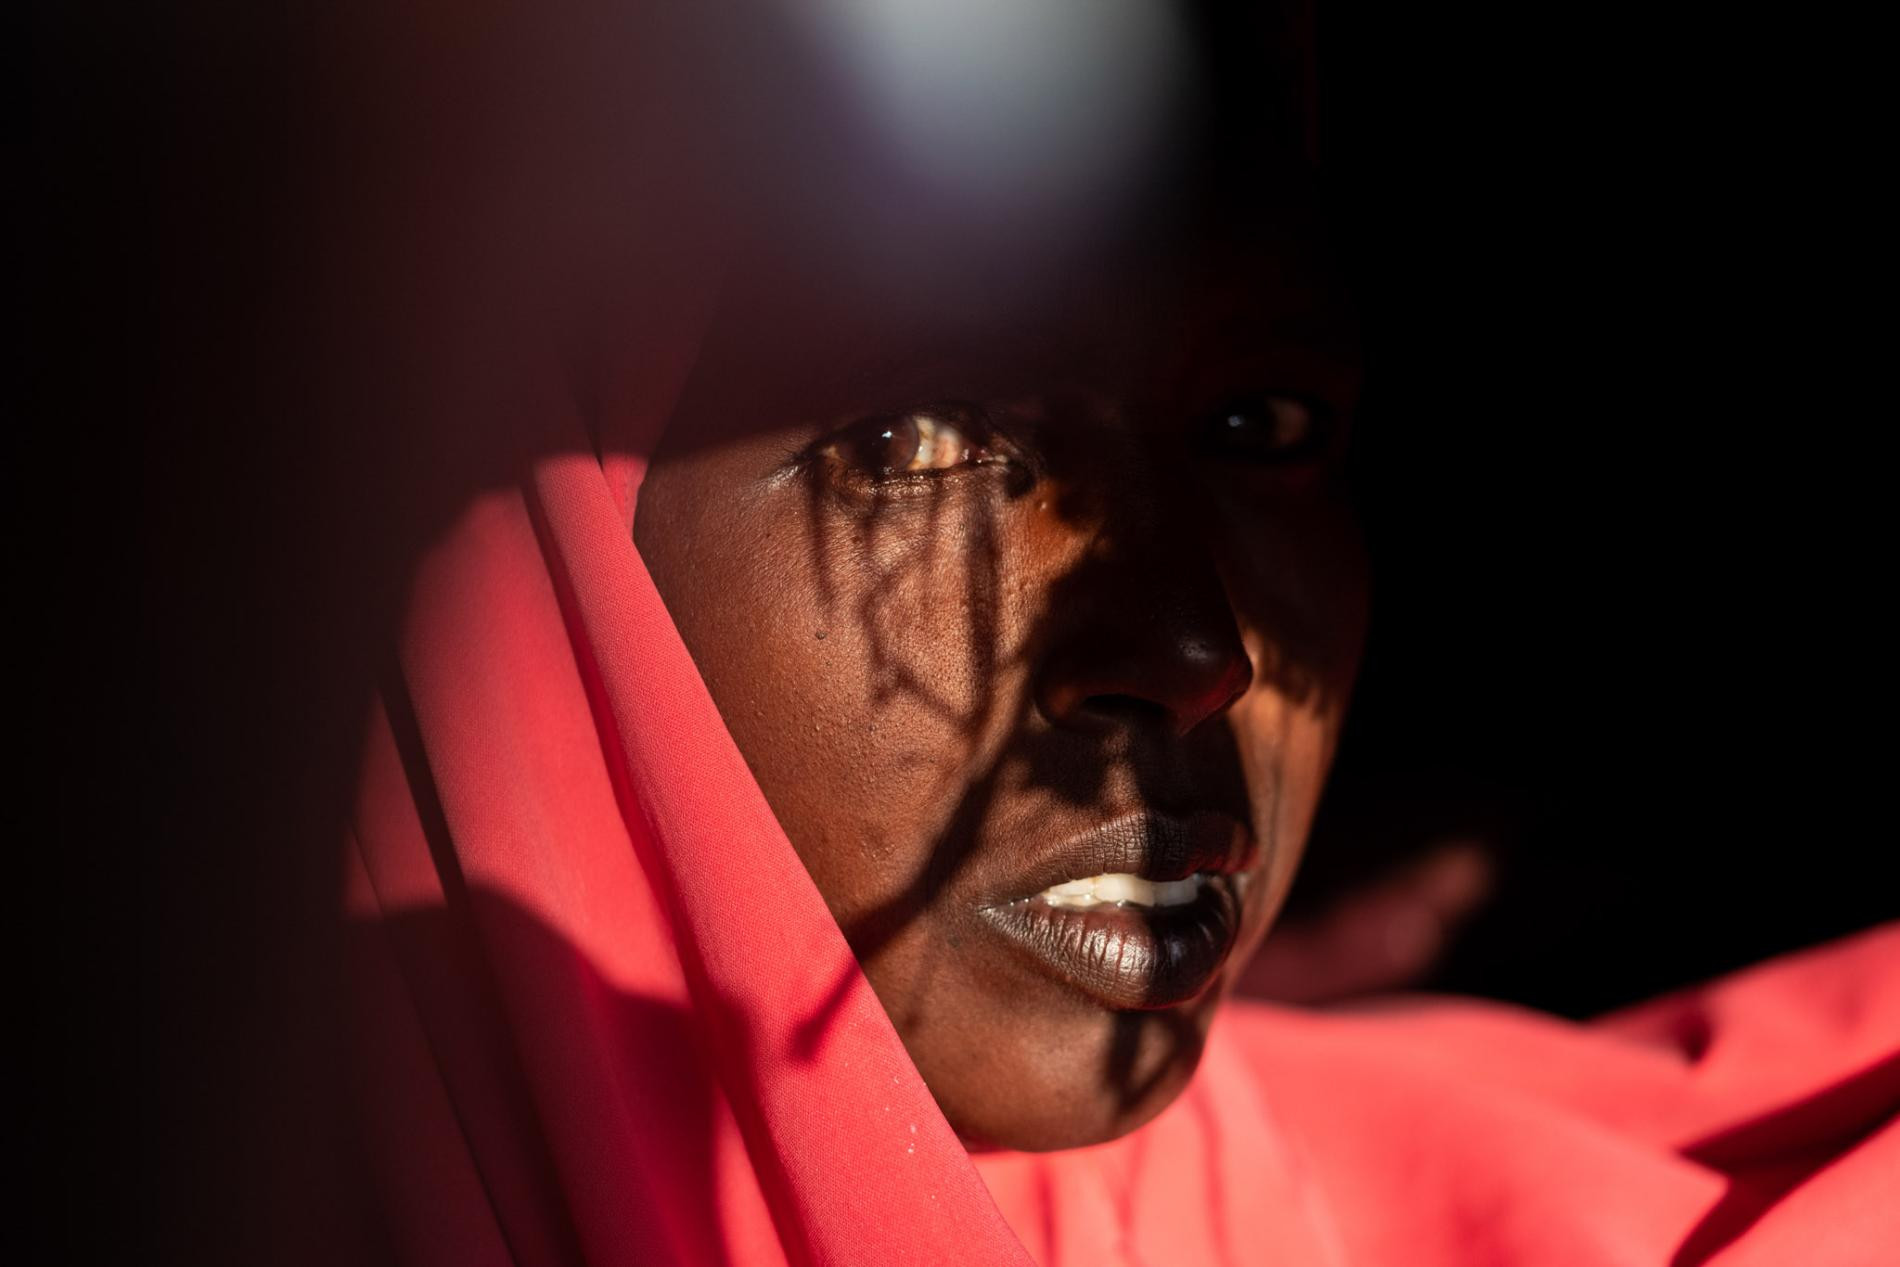 This portrait of Rahma Hassan Mahmoud was taken at the Burao IDP camp. In 2016, a severe drought killed her herd of 300 sheep and goats and 20 camels, forcing Rahma, her husband, and 12 children to abandon their village.